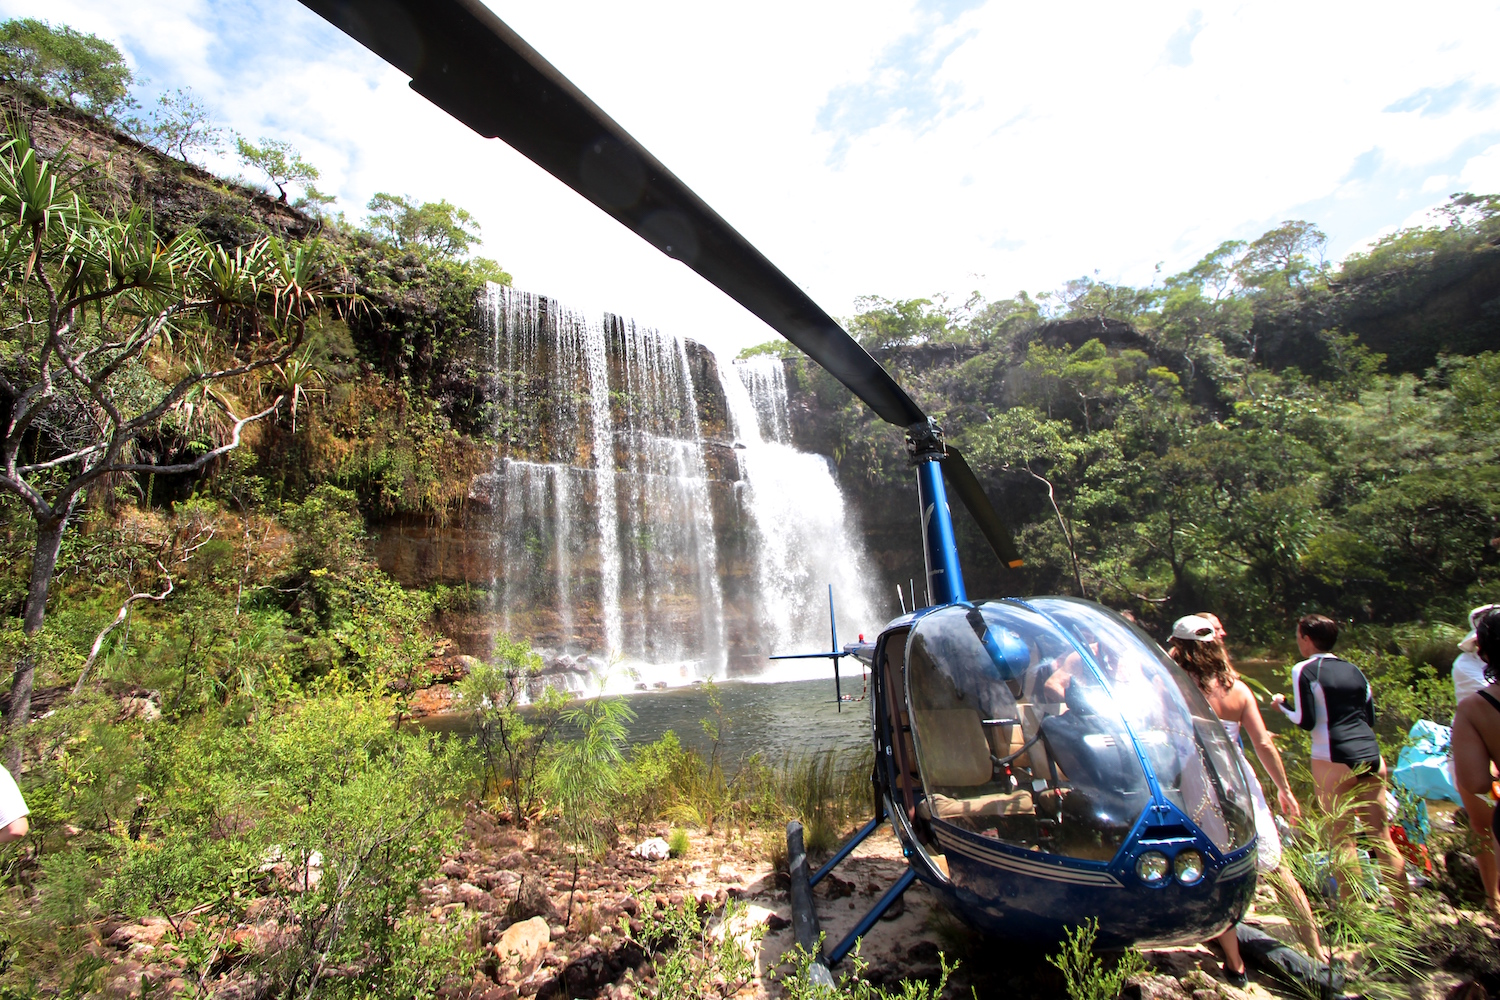 On your luxury vacation in Australia go waterfall exploring on Haggerstone Island